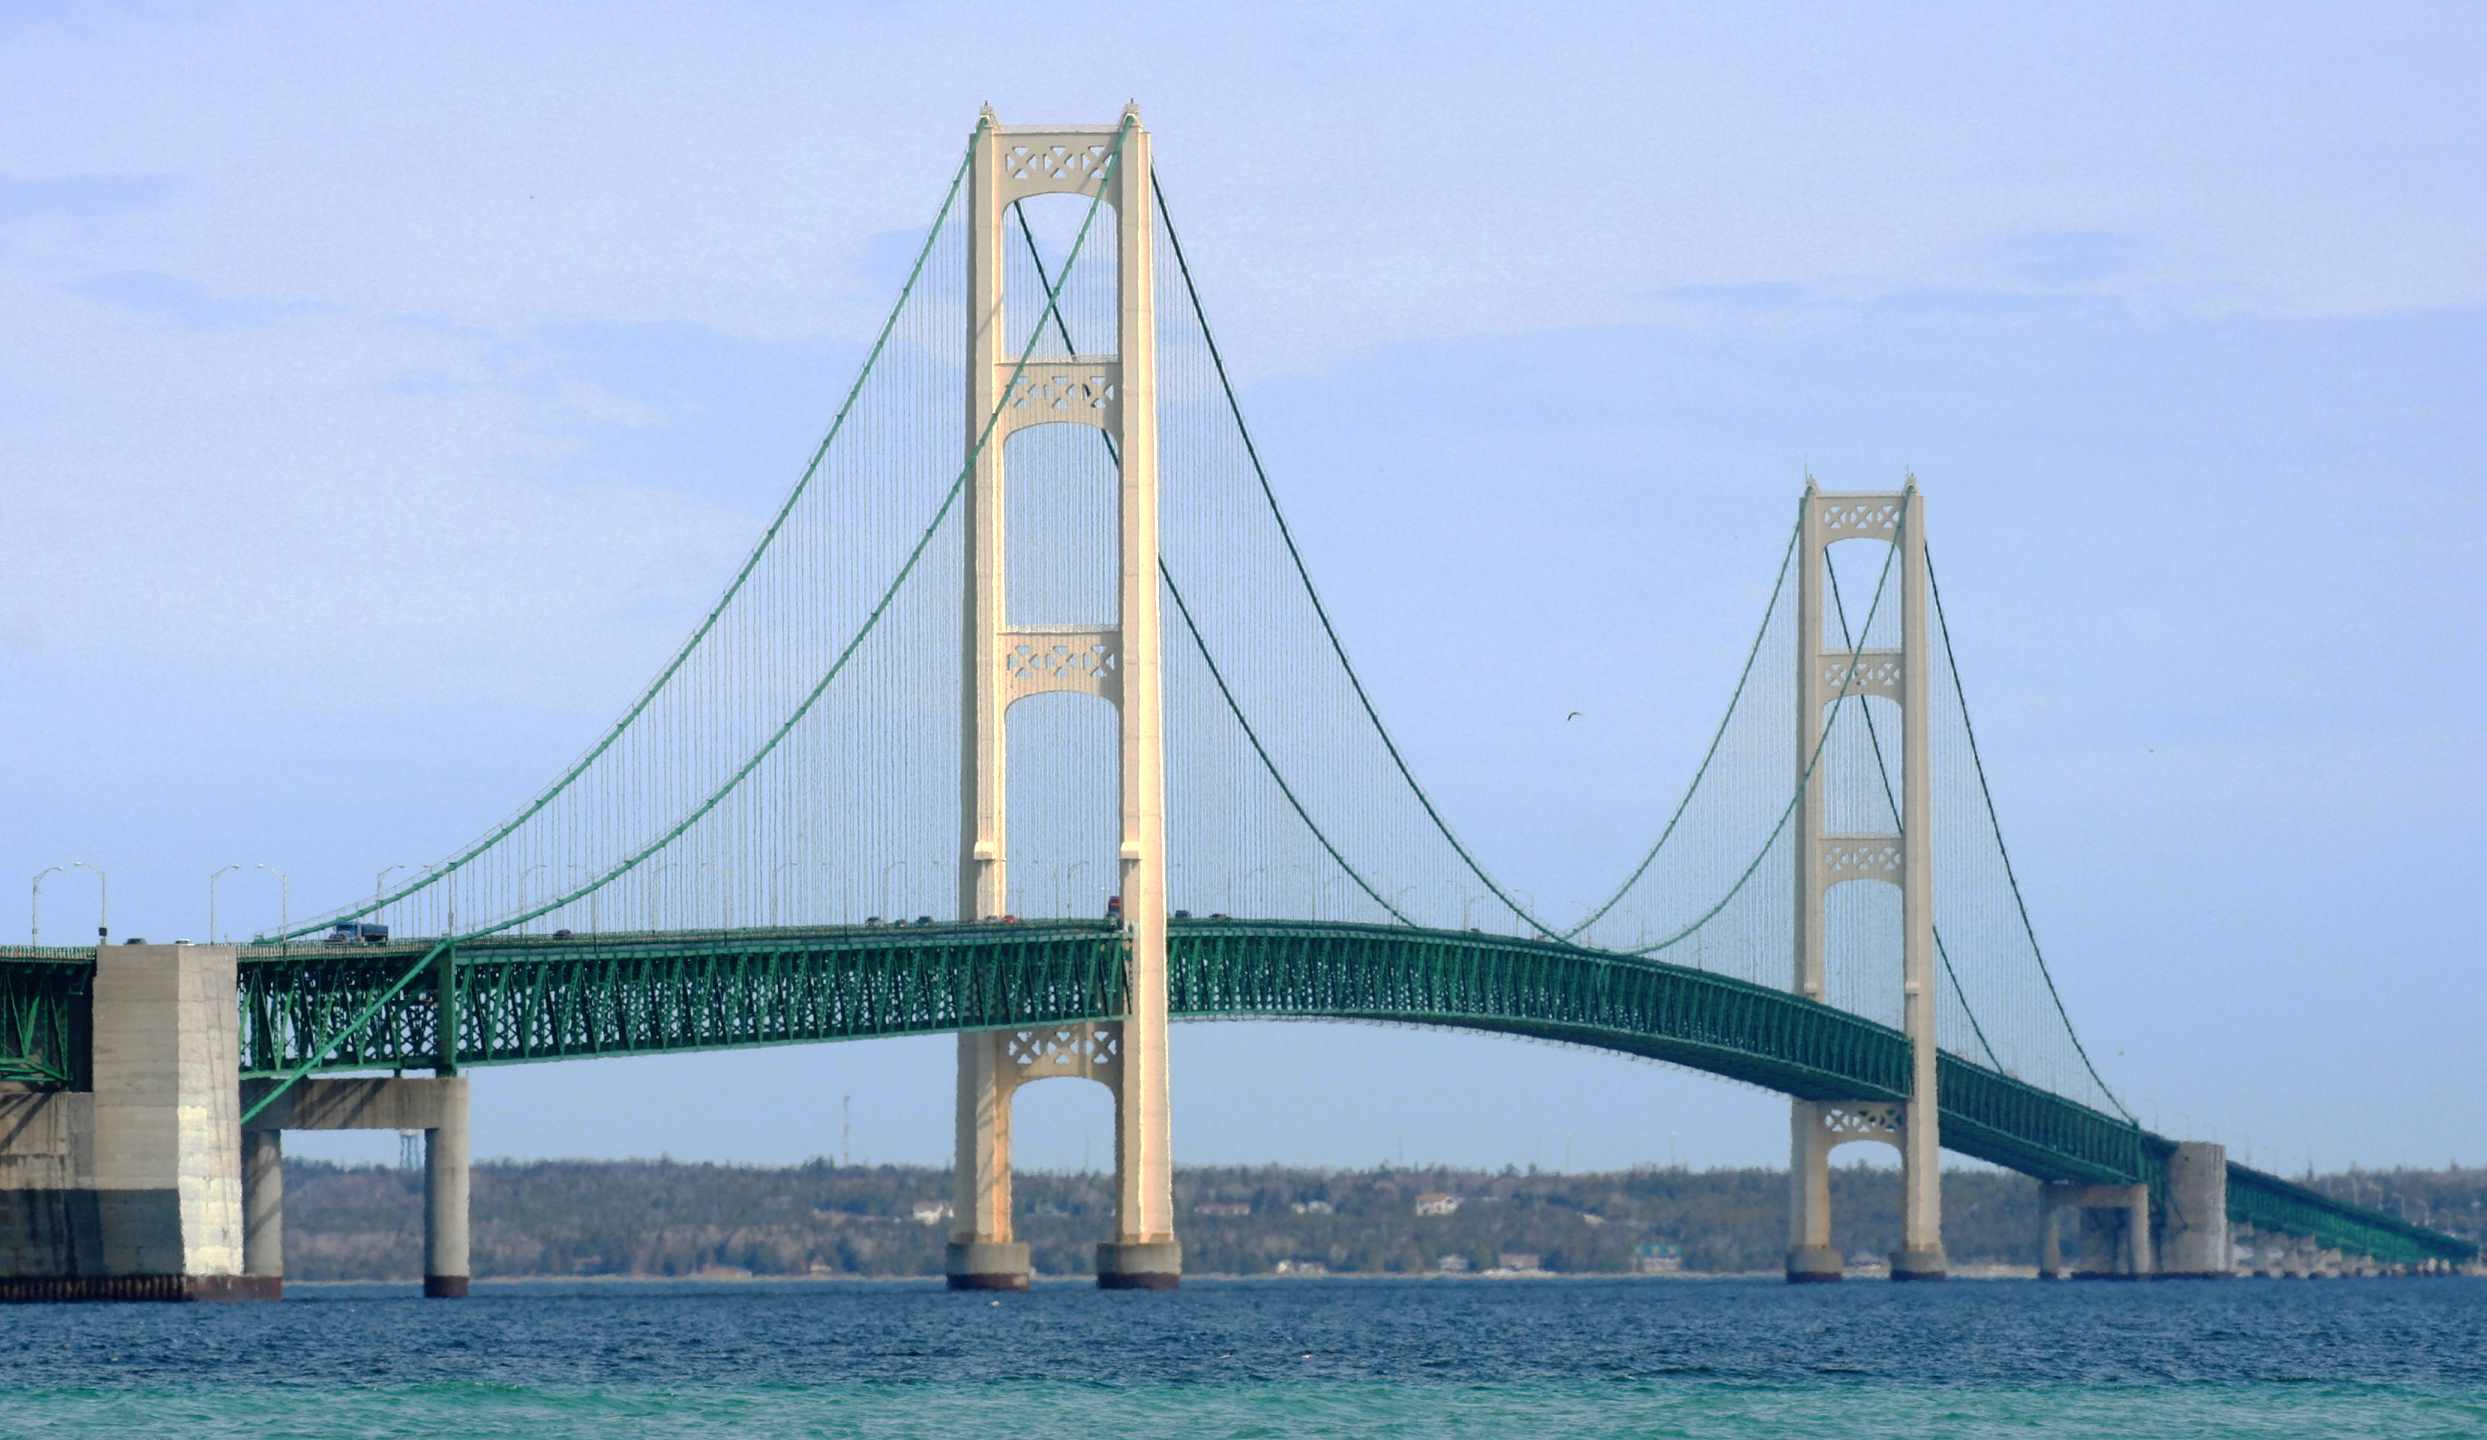 mackinac bridge authority shouldn't oversee line 5 tunnel, michigan